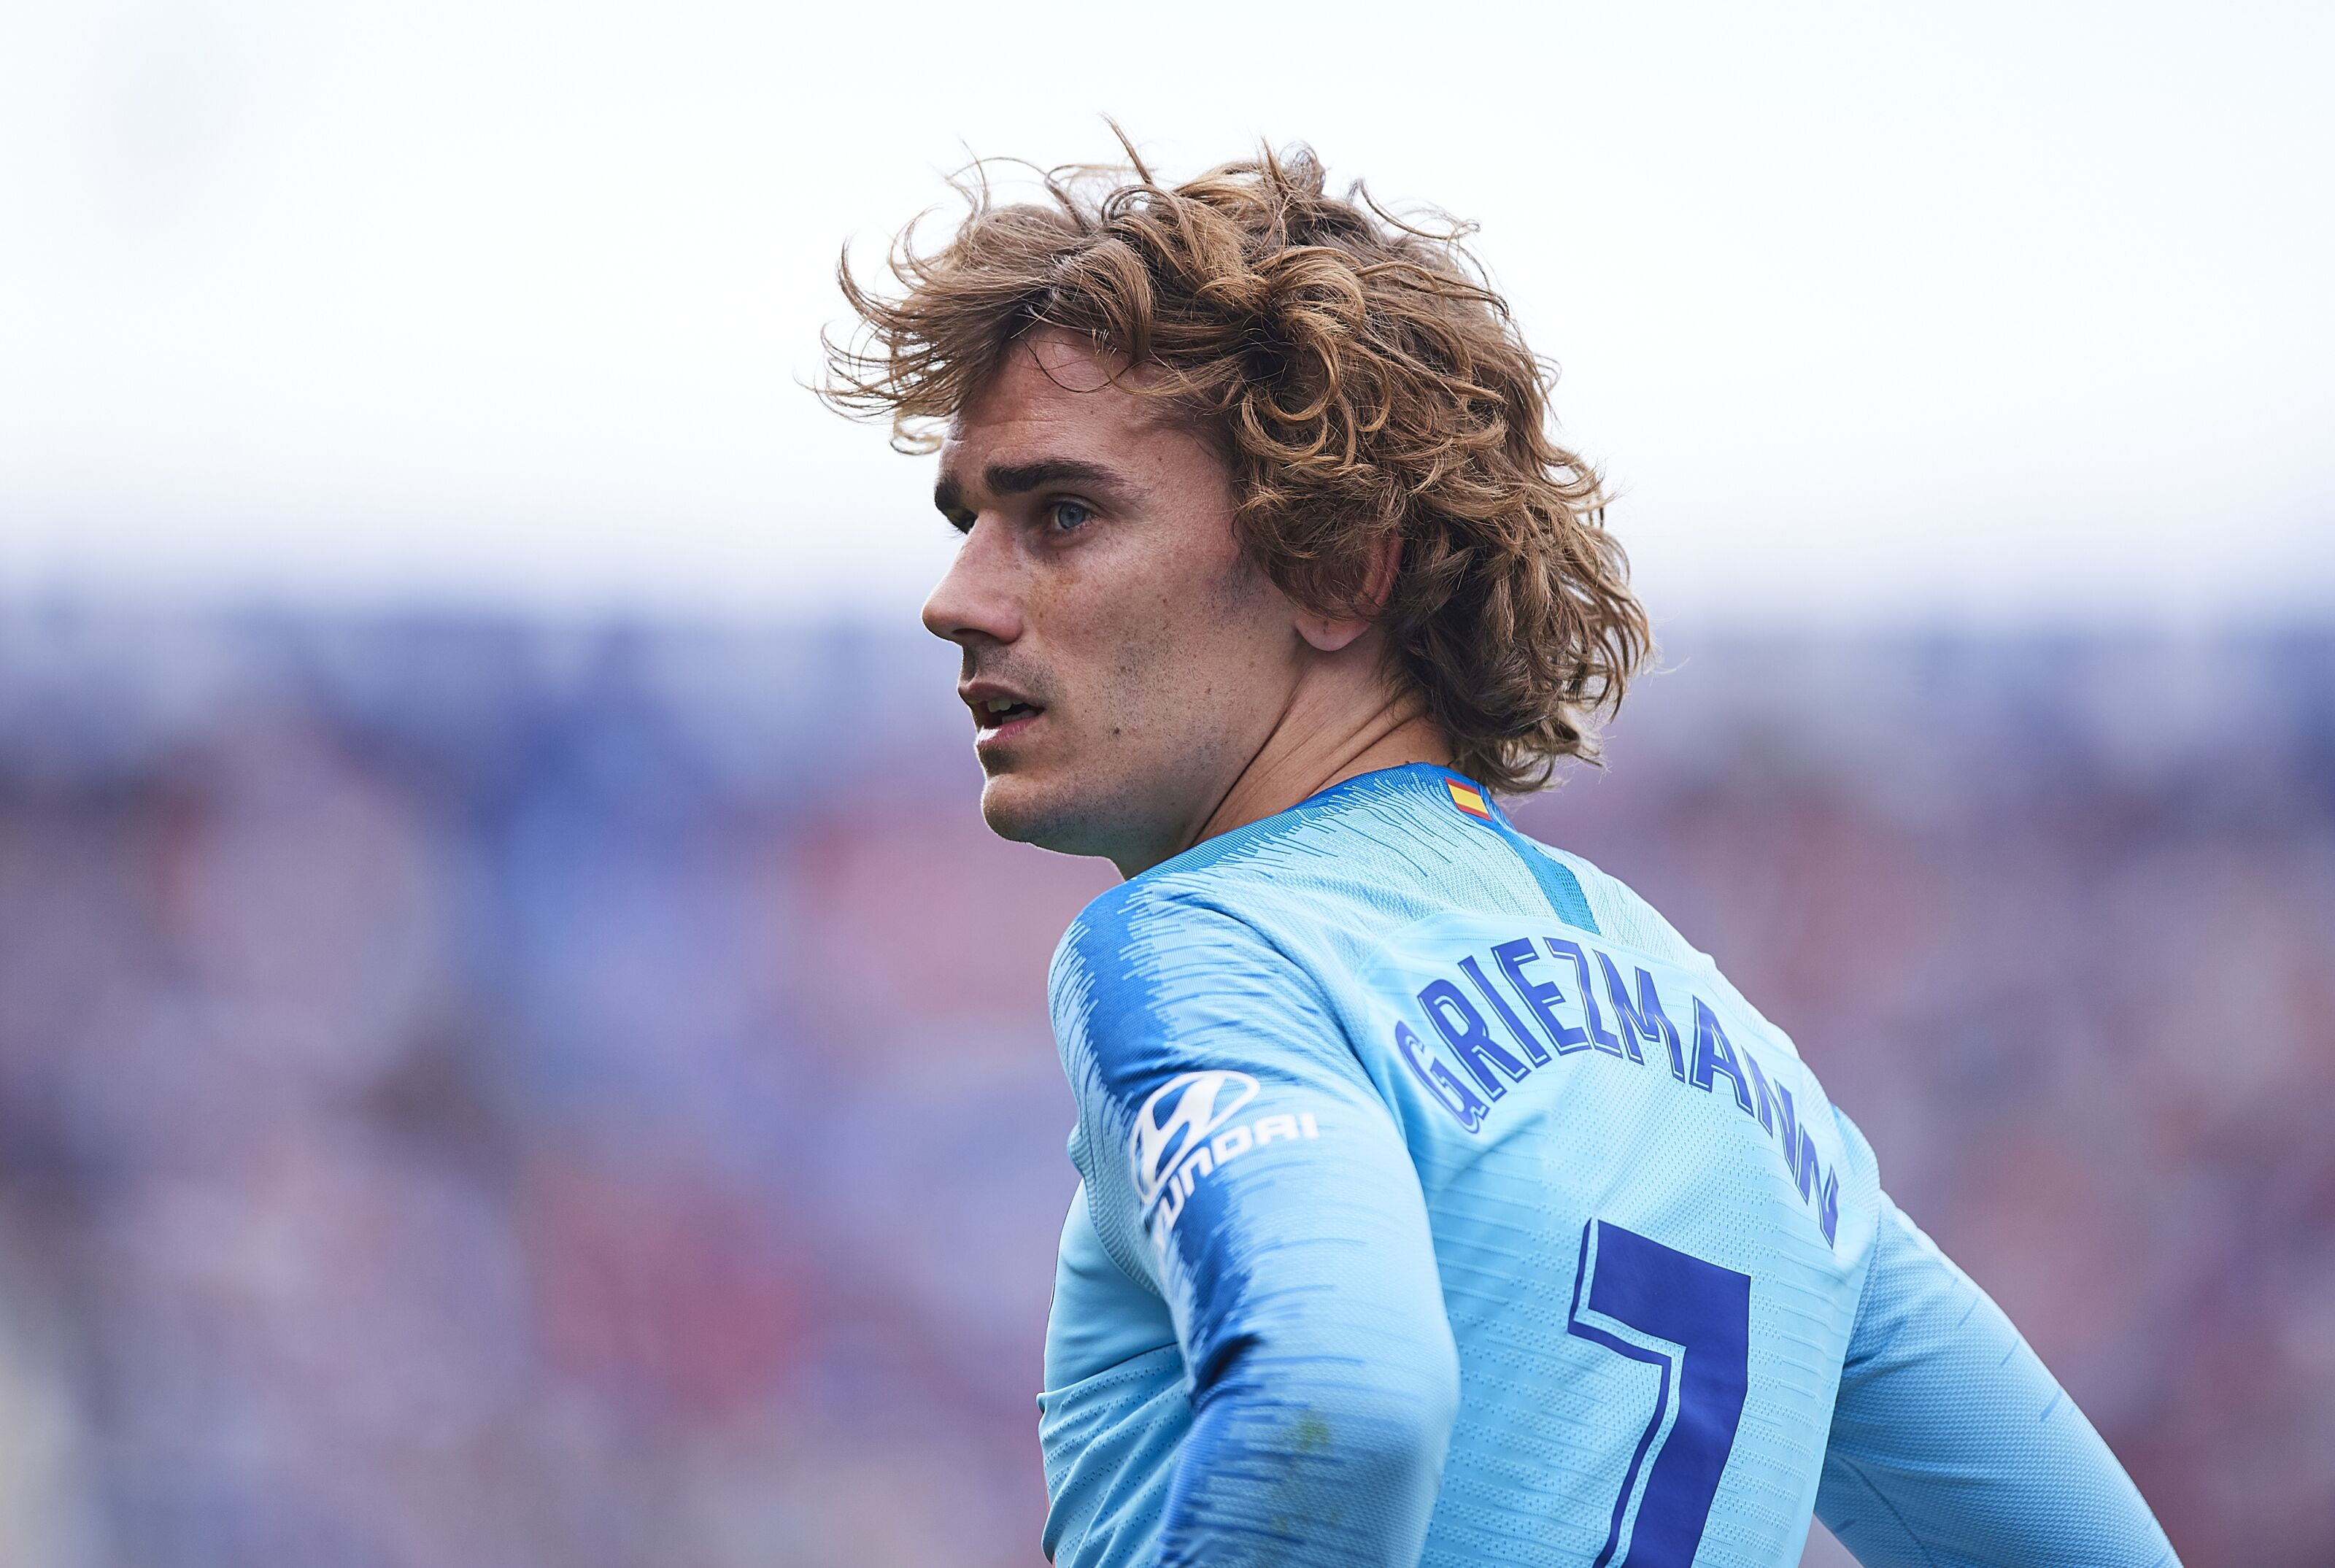 Antoine Griezmann may opt for PSG instead of Barcelona